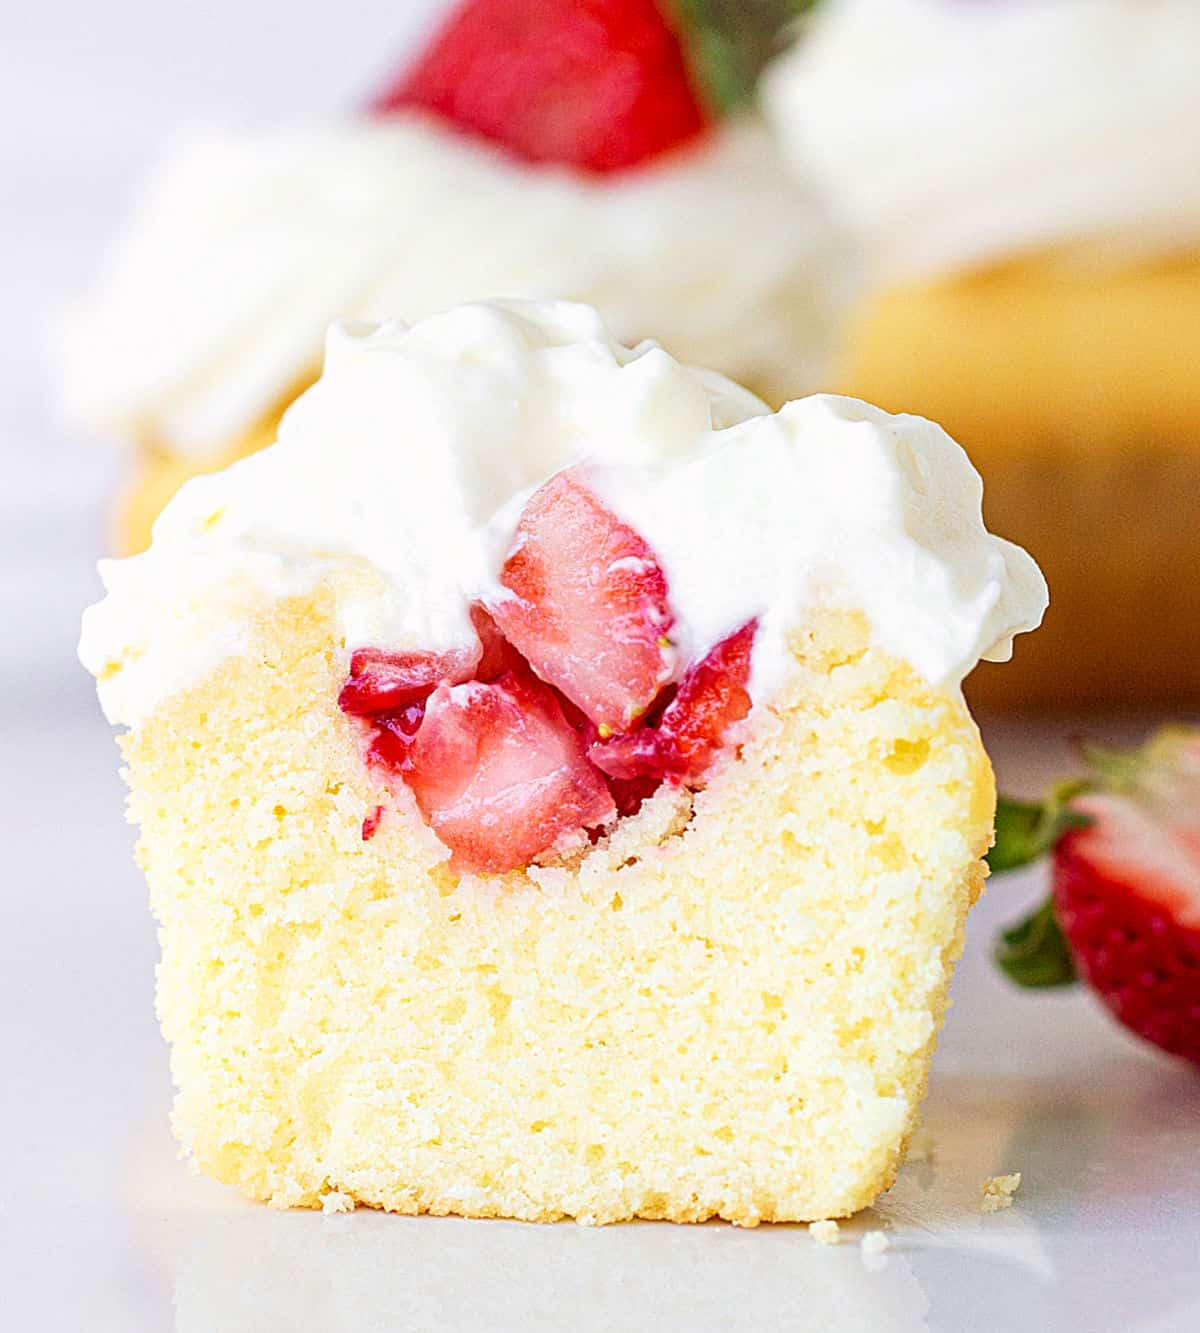 Close up of cut vanilla cupcake filled with strawberries and whipped cream